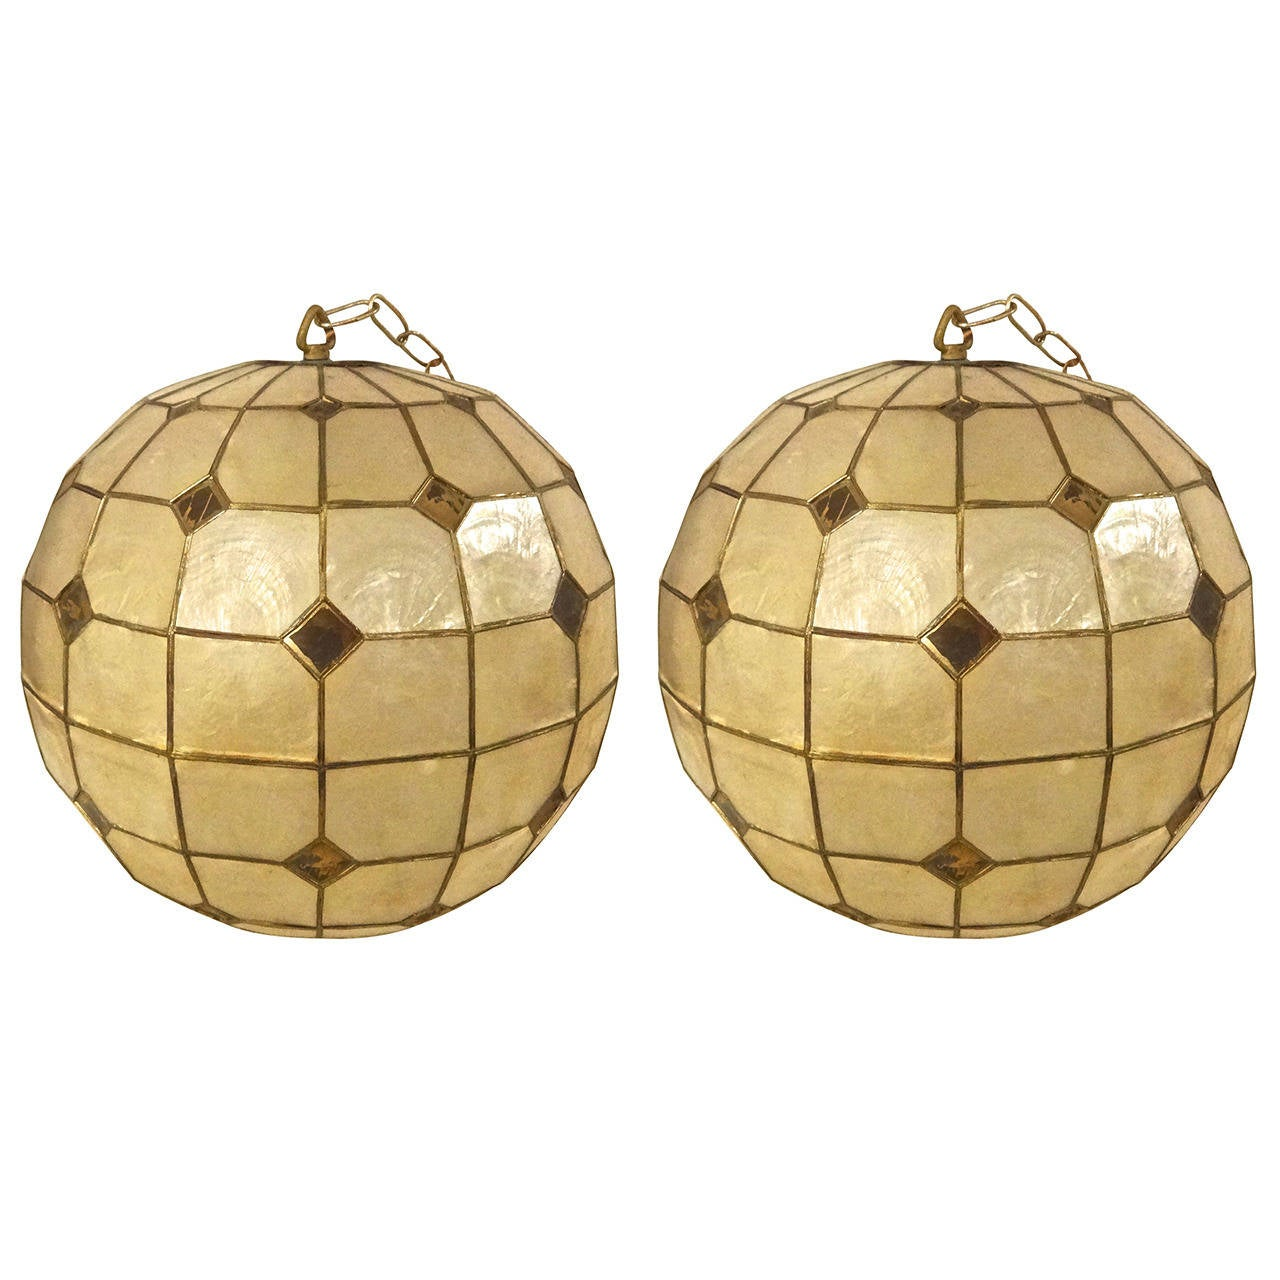 pair of capiz shell globe chandeliers at 1stdibs. Black Bedroom Furniture Sets. Home Design Ideas